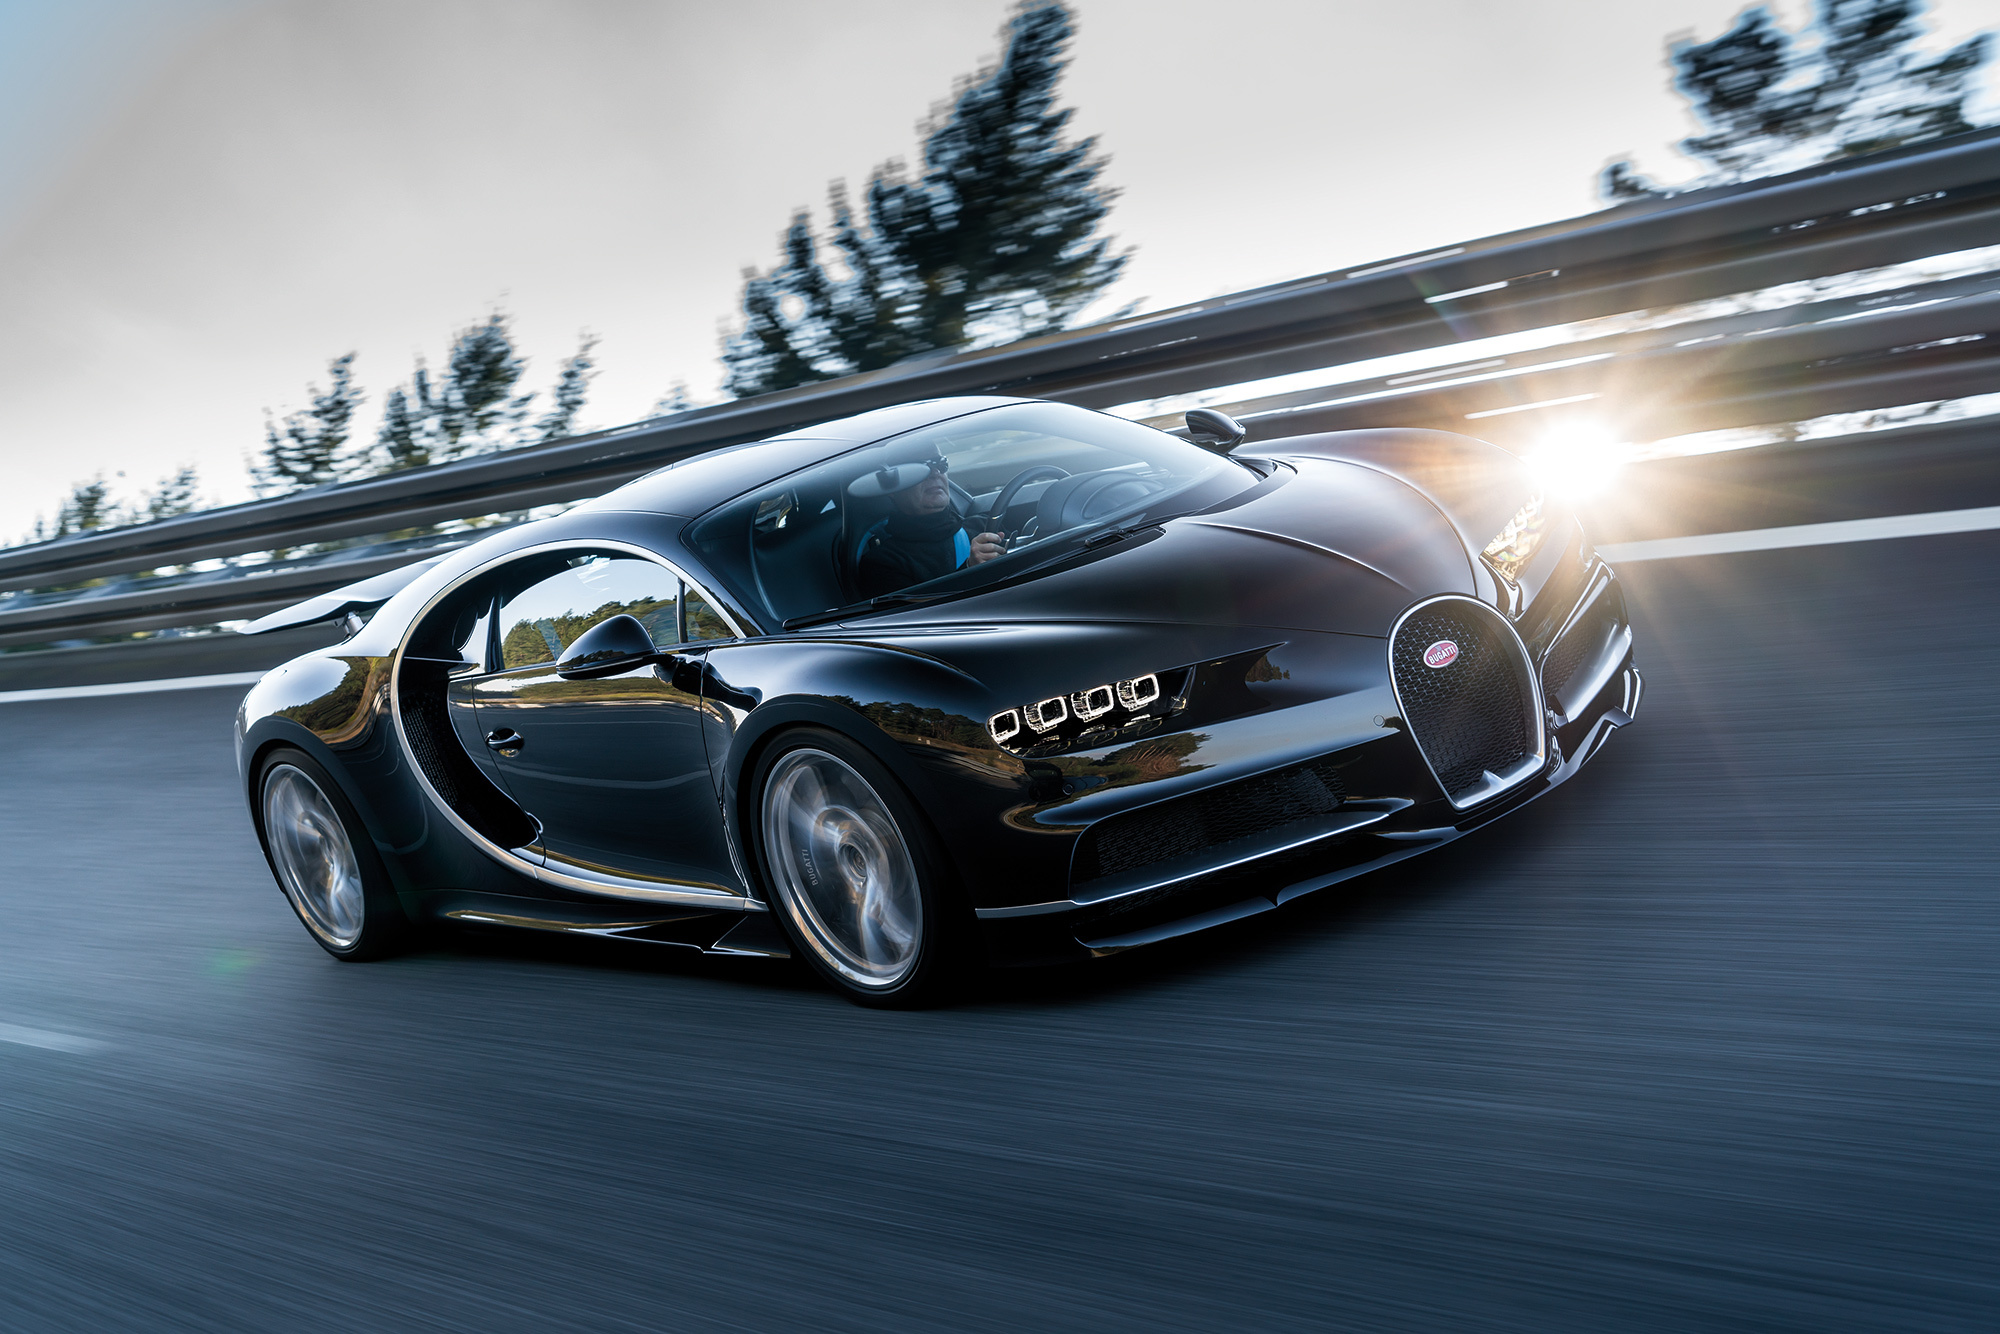 Bugatti Chiron 2017 HD Wallpapers Free Download